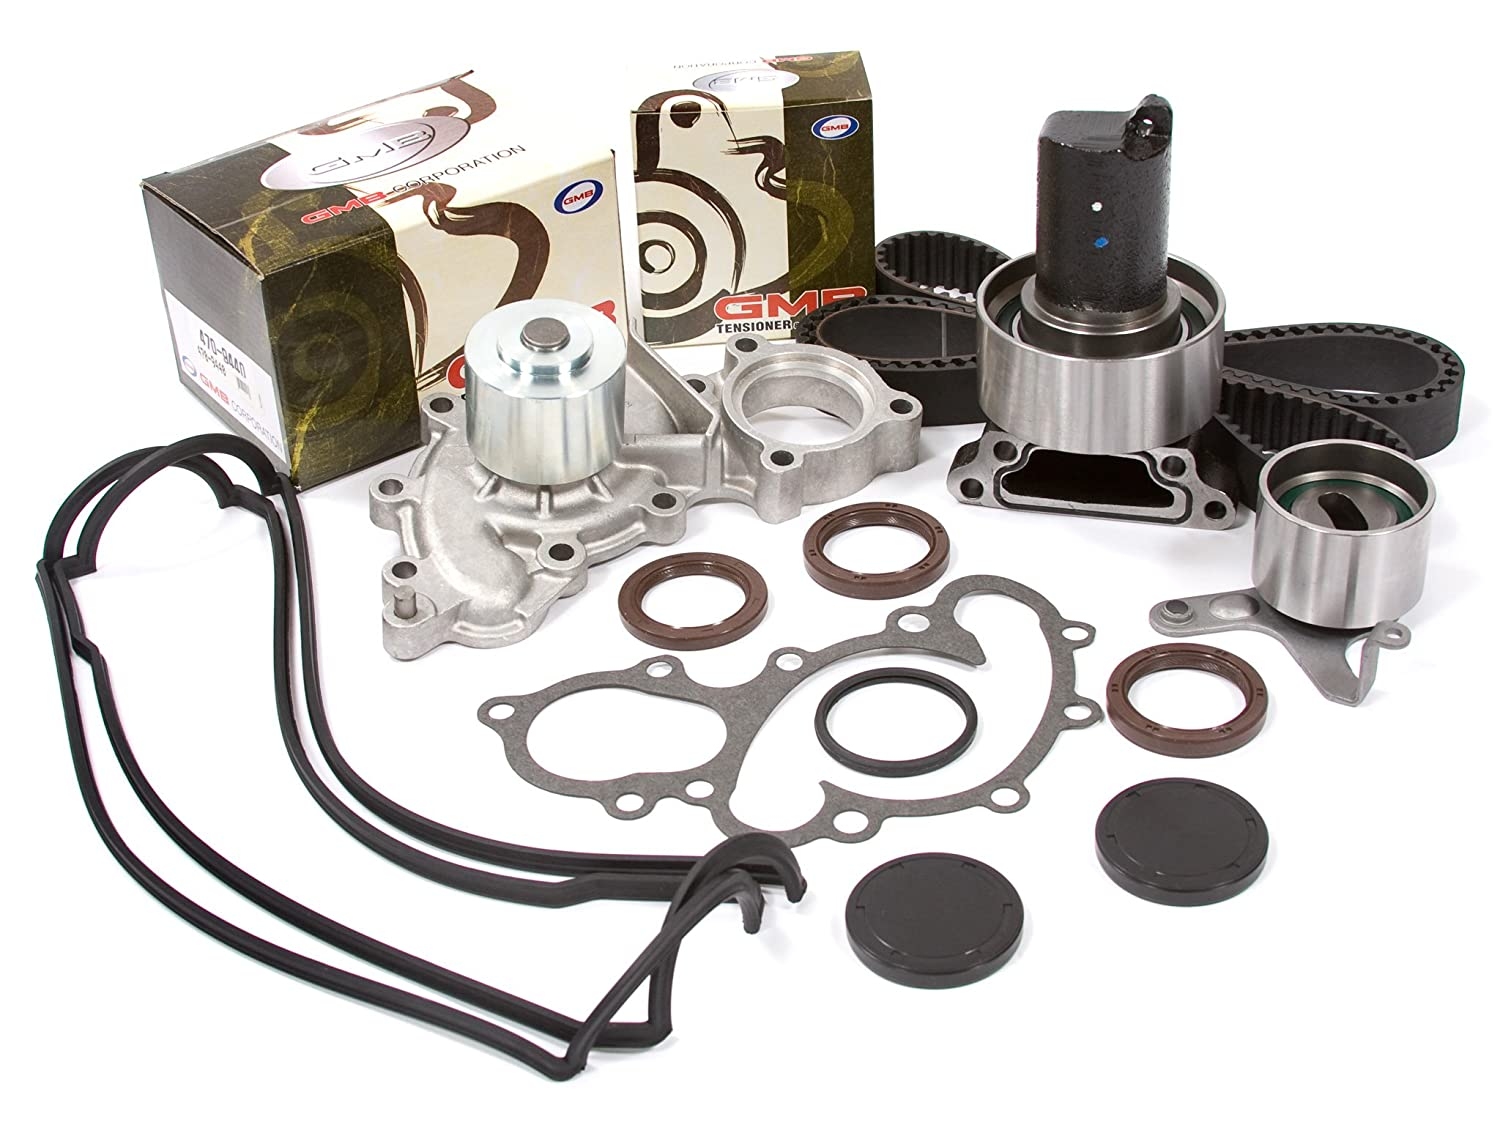 Evergreen Tbk154vct2 88 92 Toyota 4runner Pickup 30 3vze Timing Belt Tensioner Sohc Kit Valve Cover Gmb Water Pump Without Outlet Pipe Automotive